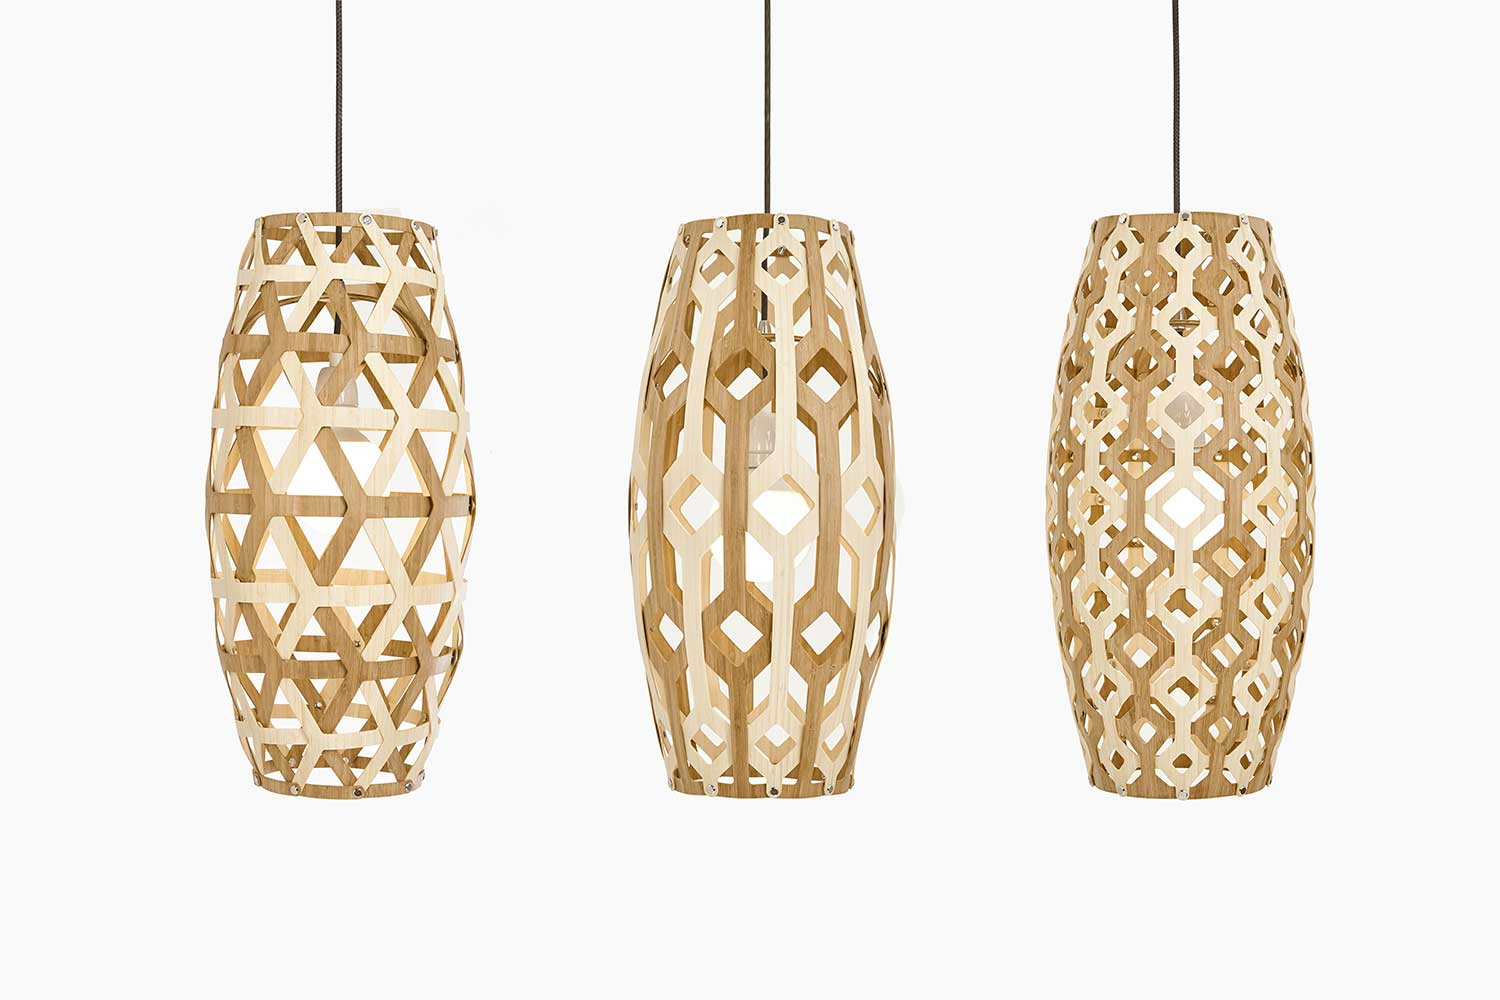 wooden lighting. South African Designer Jacques Cronje Combines Design, Digital Technology And A Love For Wood In Wooden Lighting E